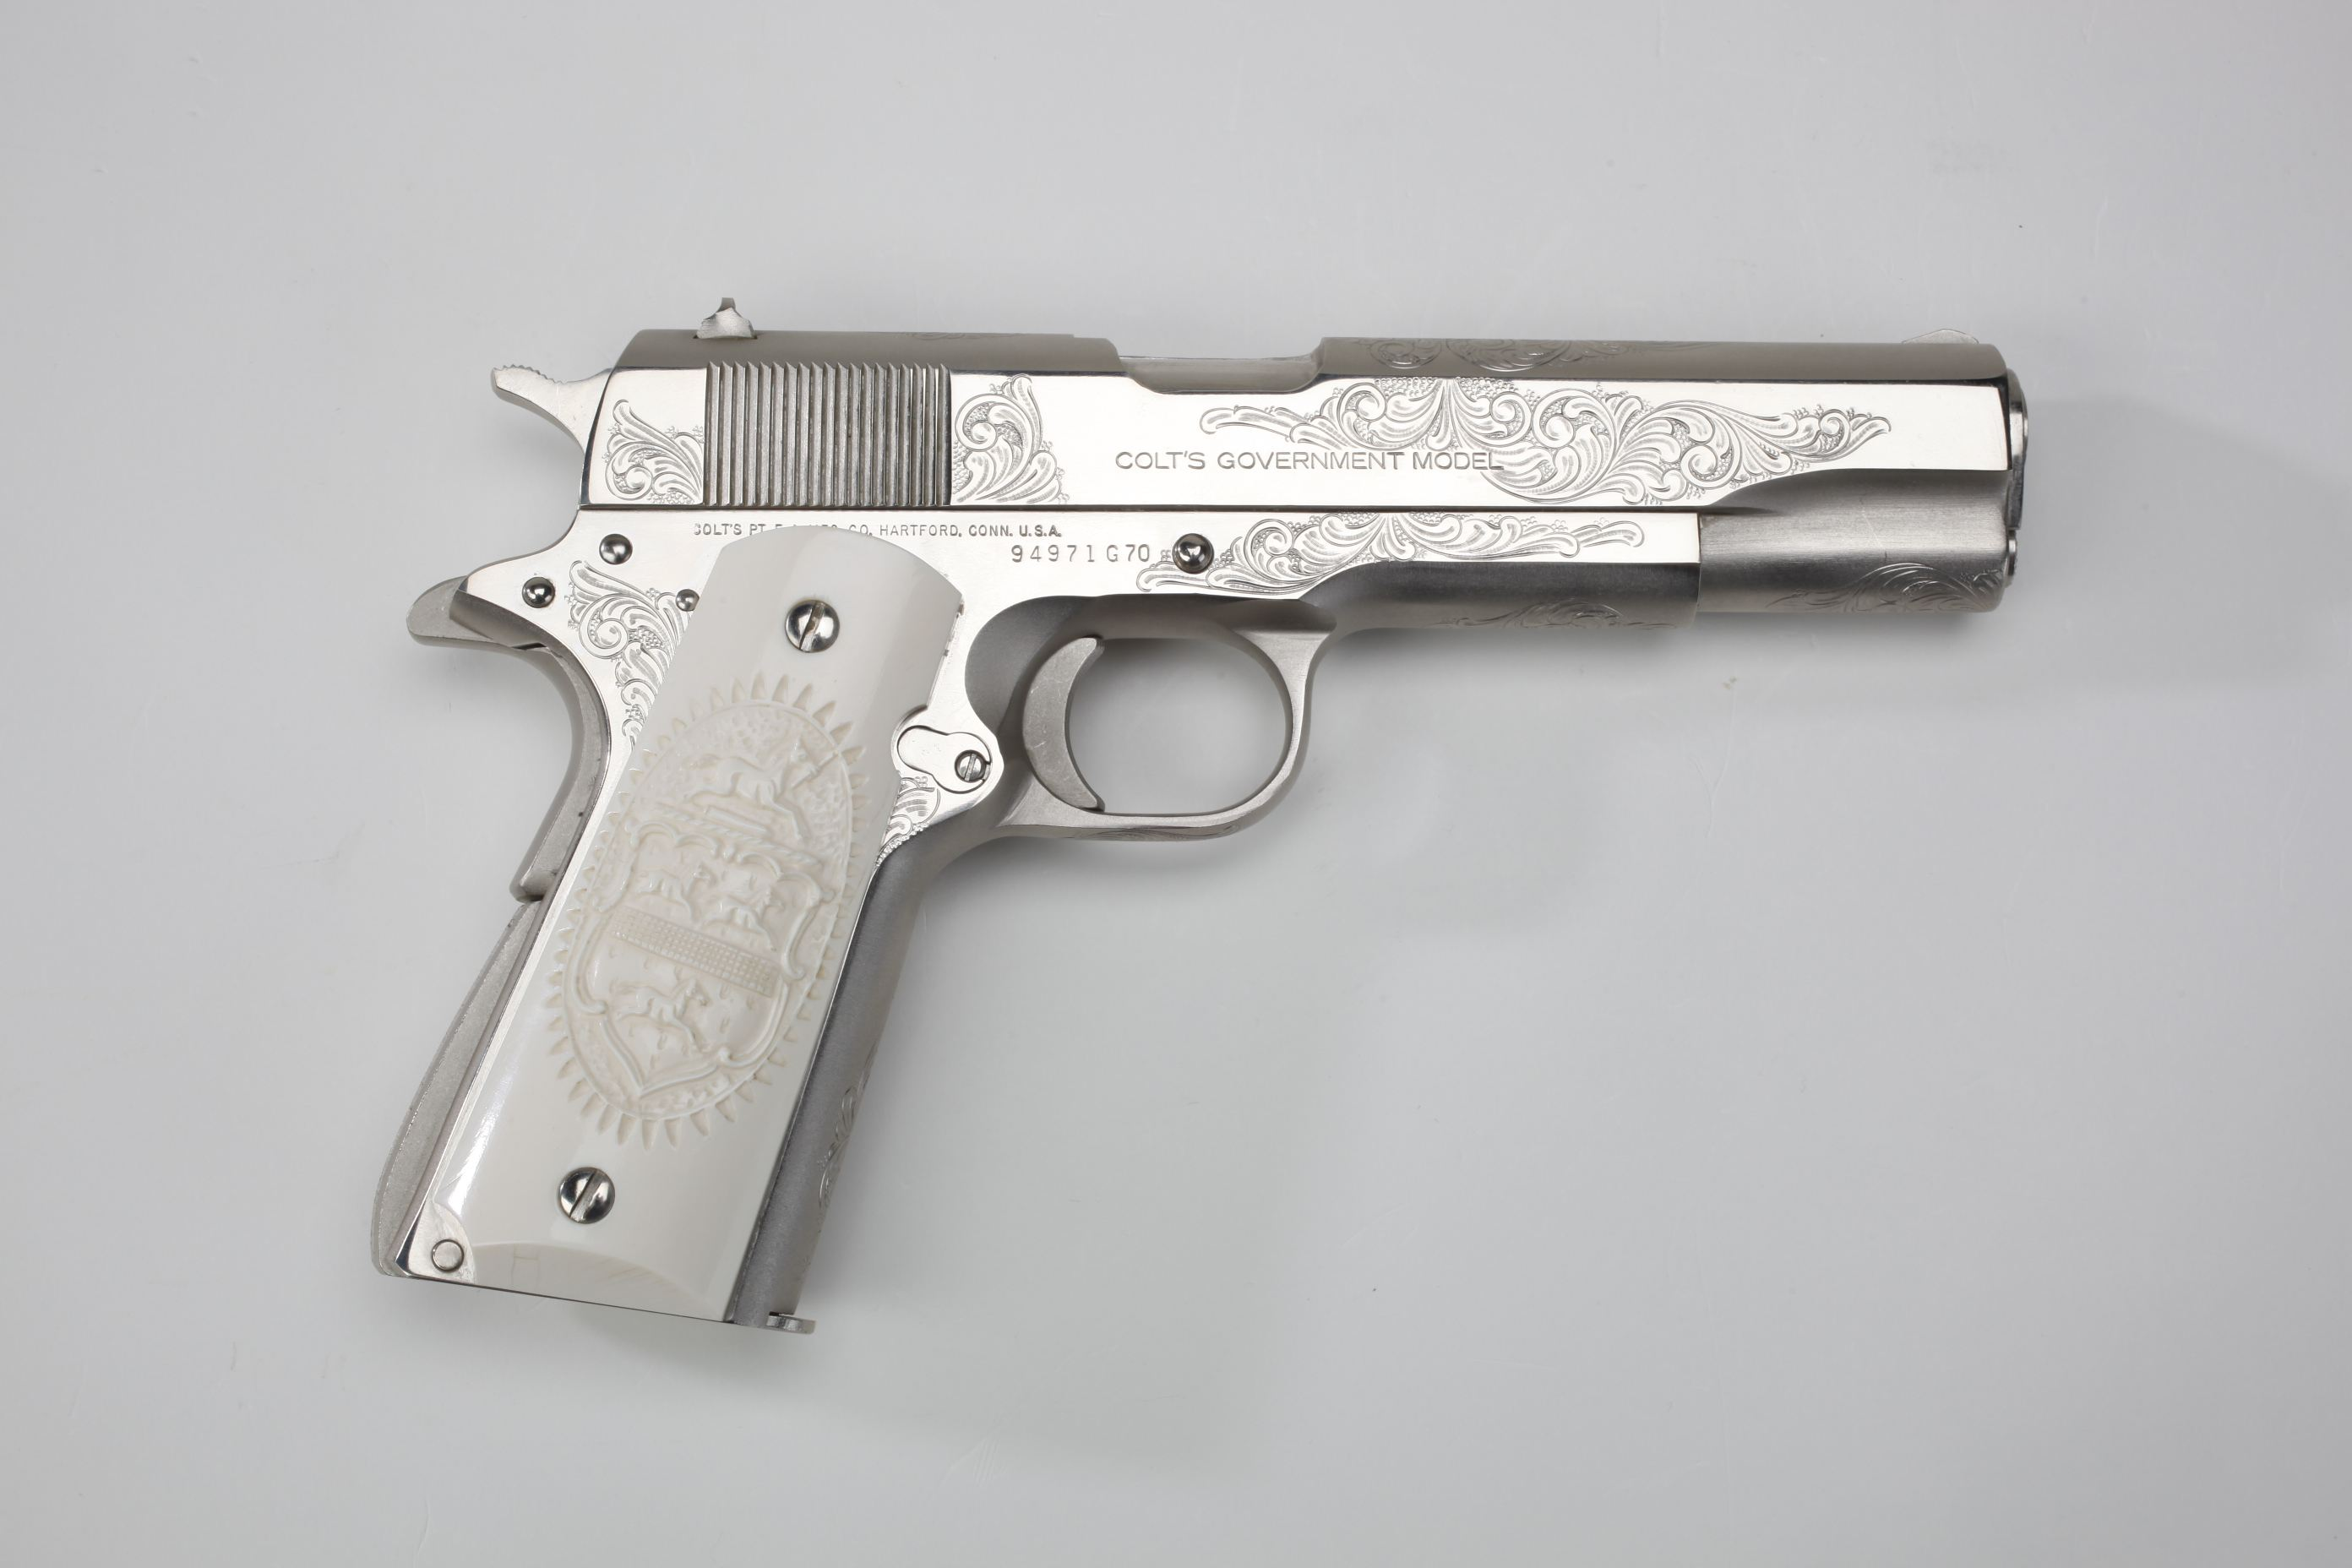 Colt (Hartford, CT) Mark IV Series 70 Semi-Automatic Pistol